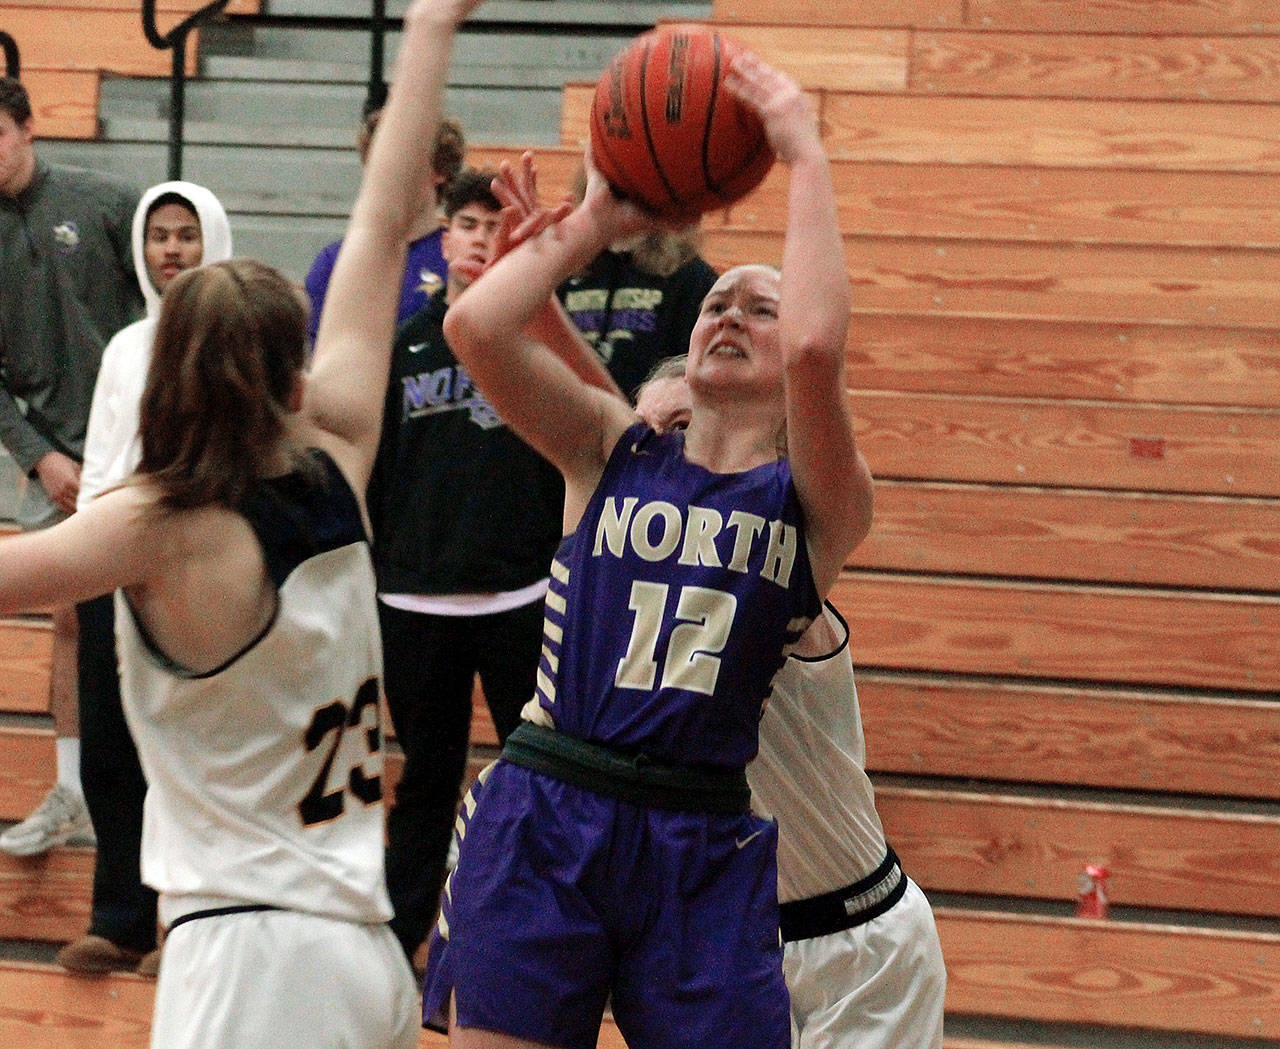 North Kitsap's Grace Johnson takes a shot over Ellie Woolever of Bainbridge (23) in her team's 53-45 victory on Dec. 9. (Mark Krulish/Kitsap News Group)